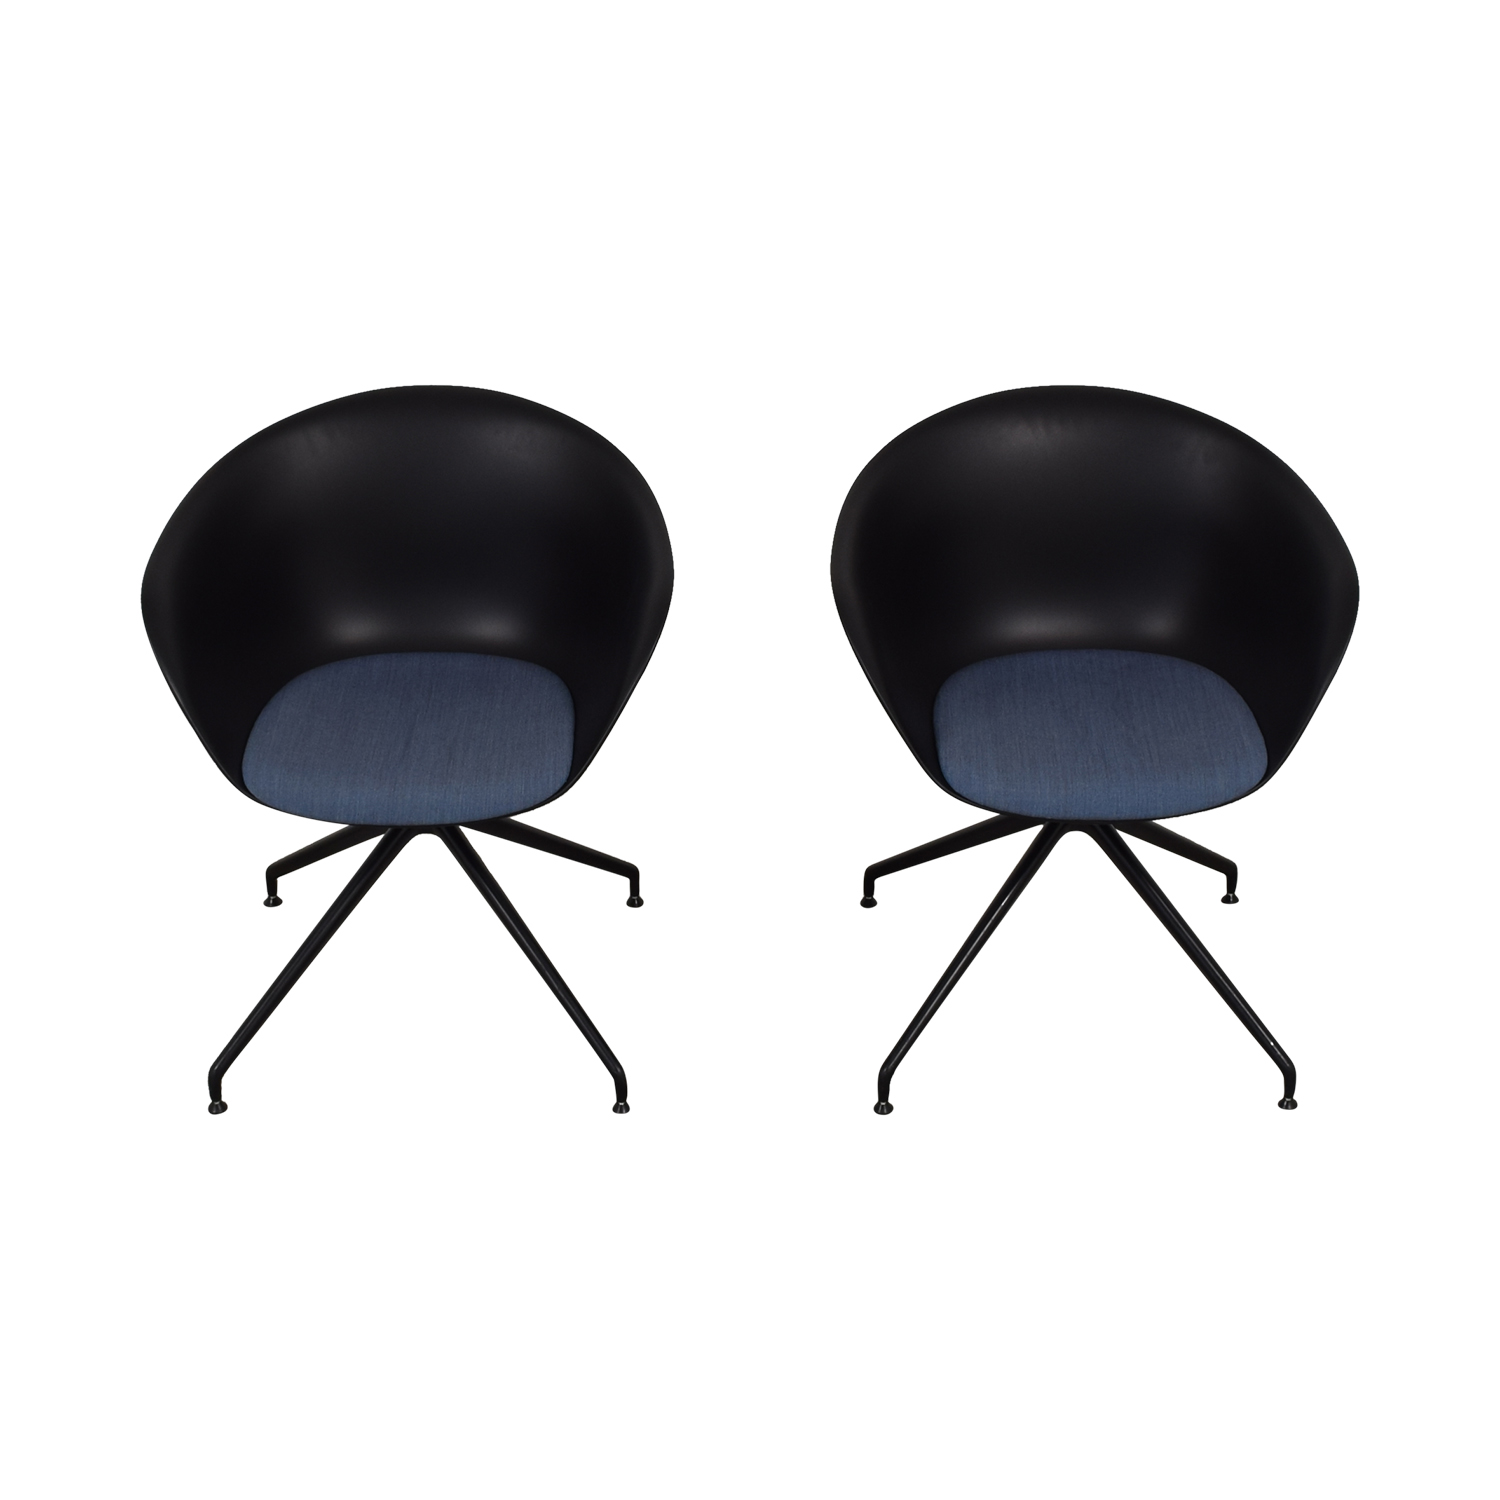 buy Arper Duna Dining Chairs Arper Chairs